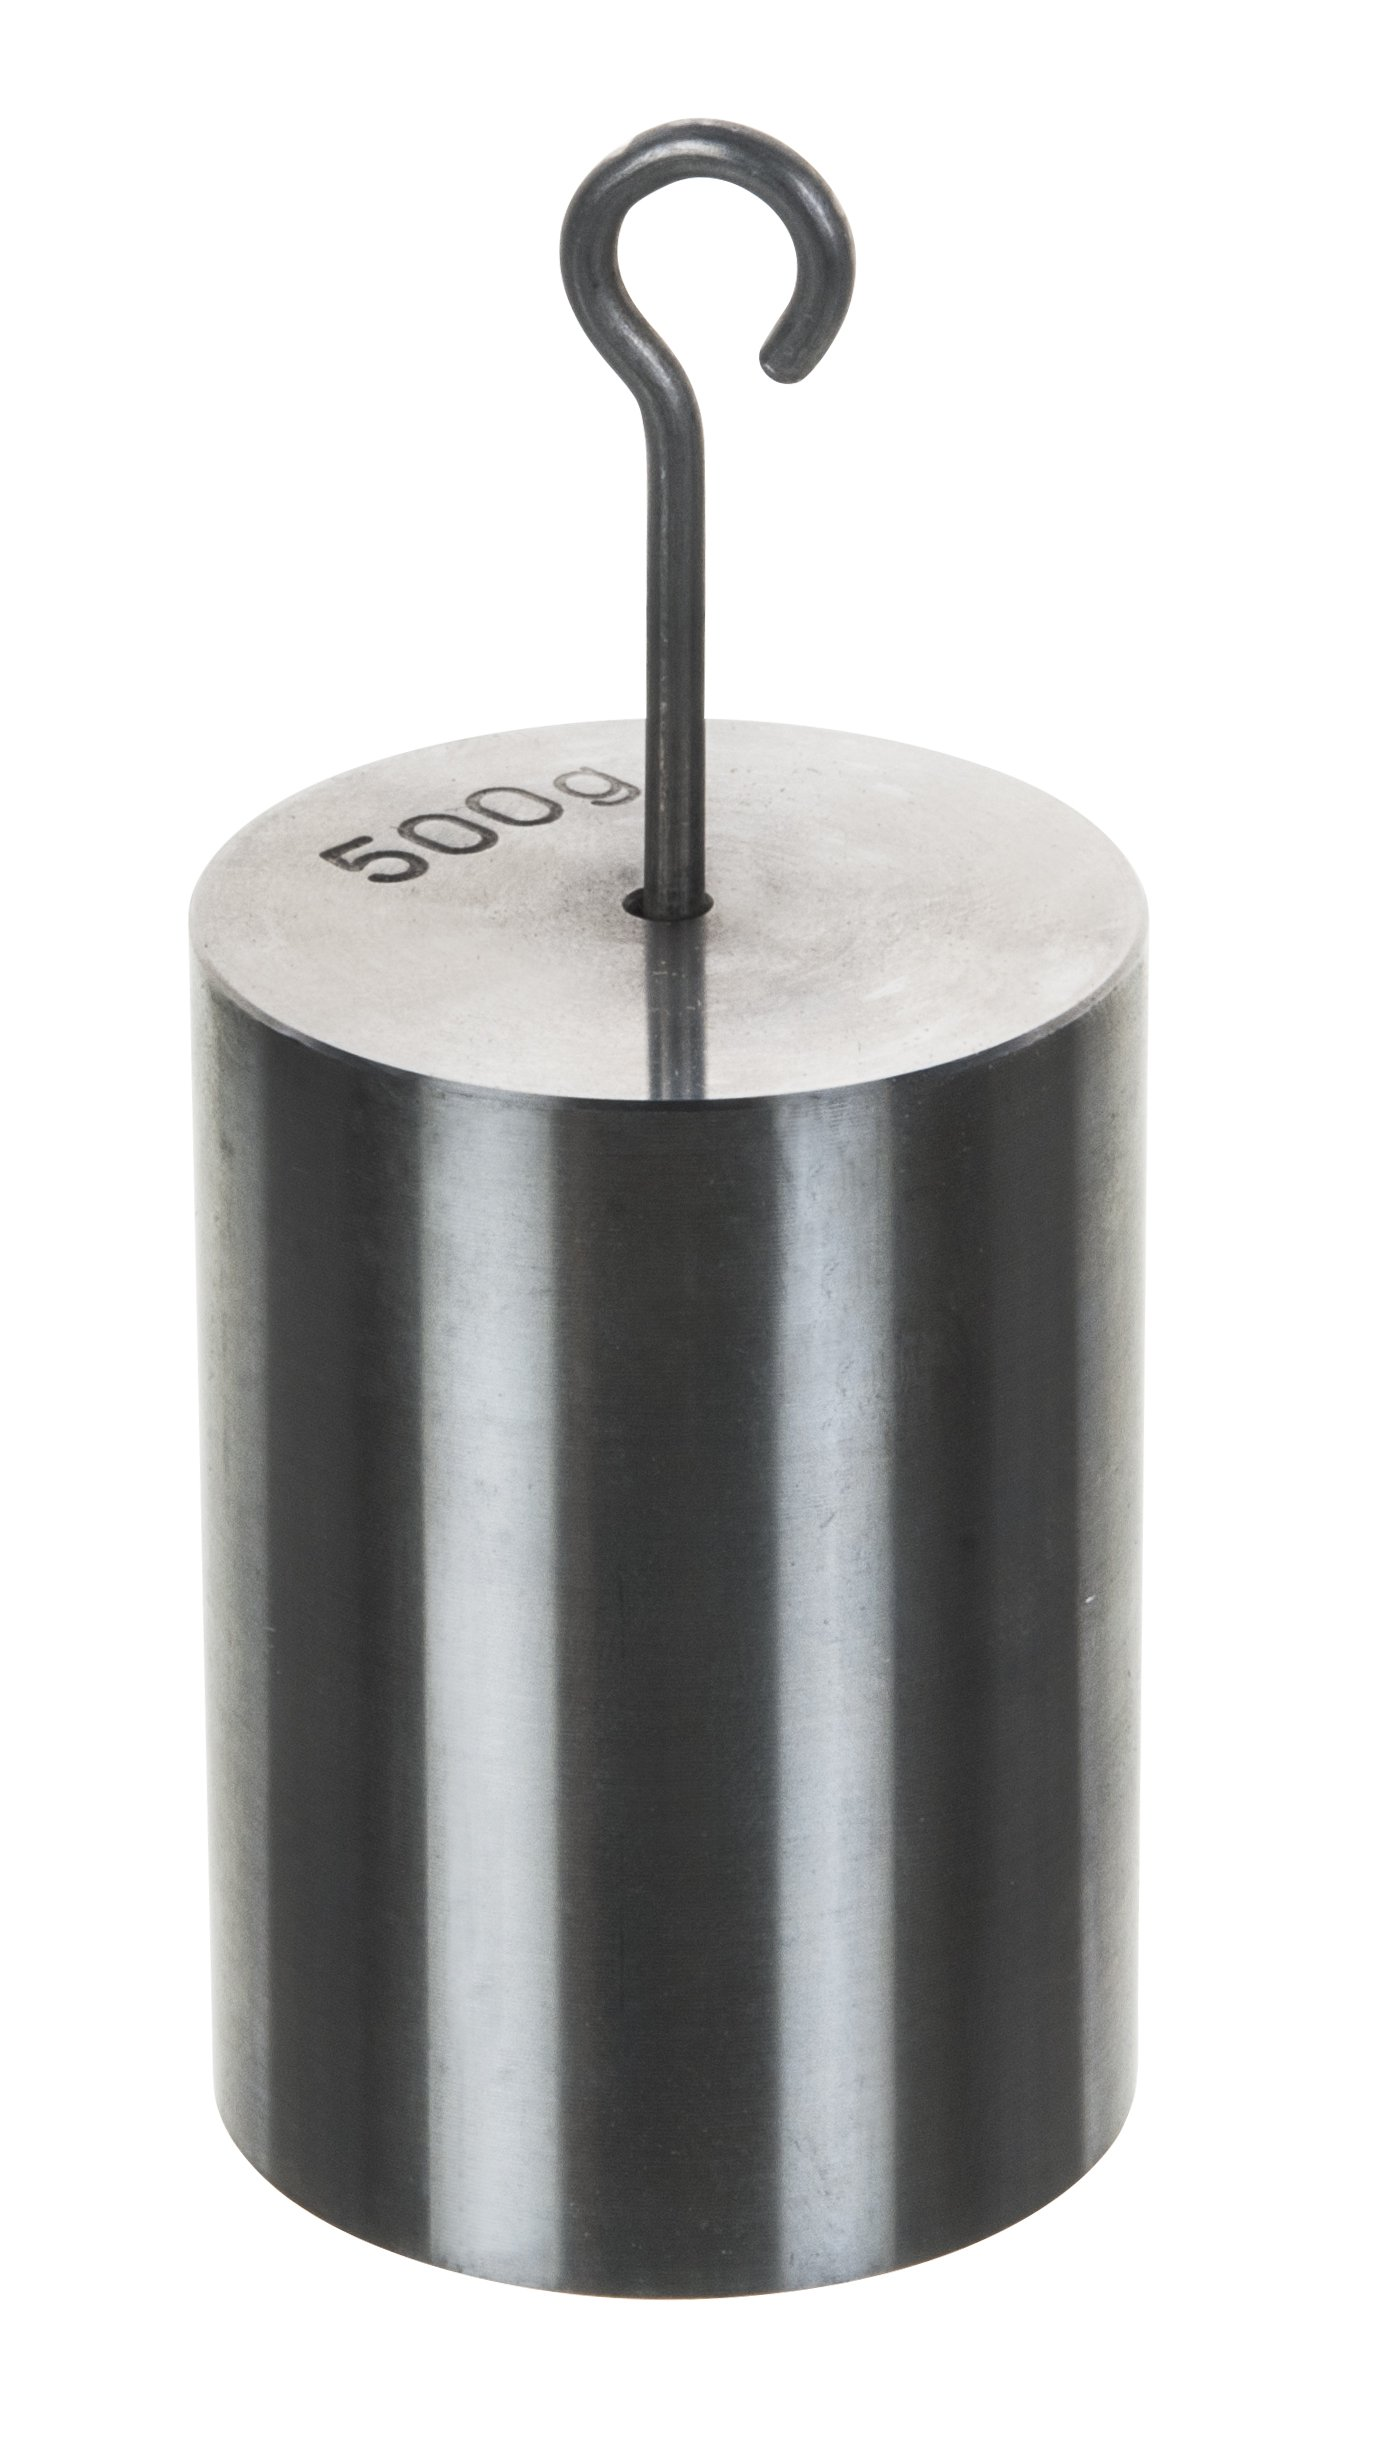 Double Hooked Weight Stainless Steel 500 Grams (1.10 Lbs.) Eisco Labs by EISCO